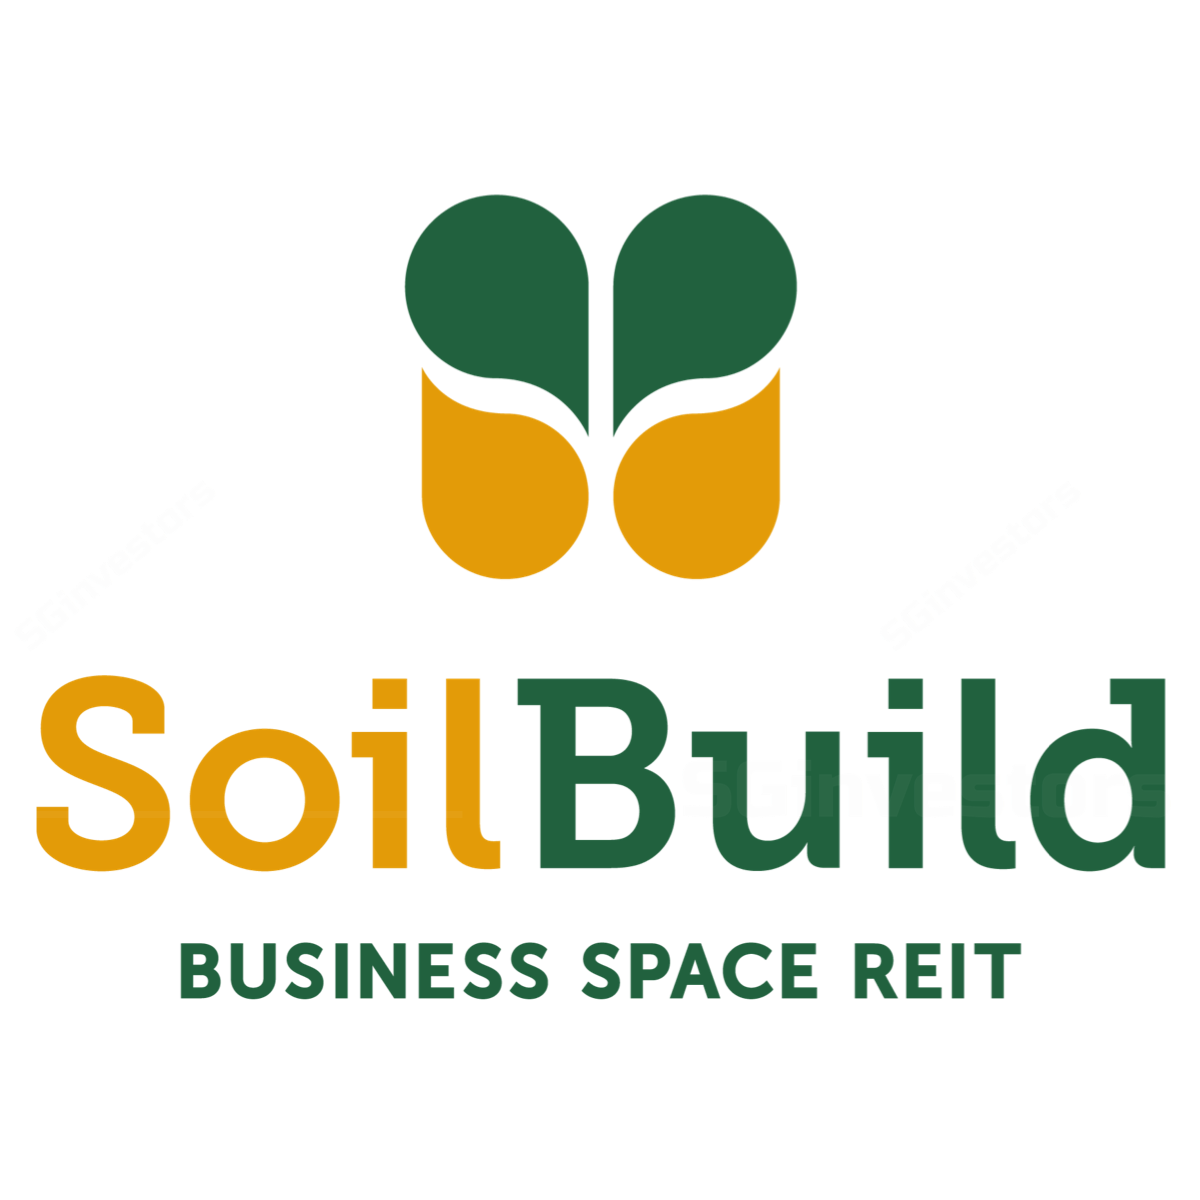 Soilbuild Business Space REIT - OCBC Investment 2018-03-29: LIFTING THE OVERHANG!